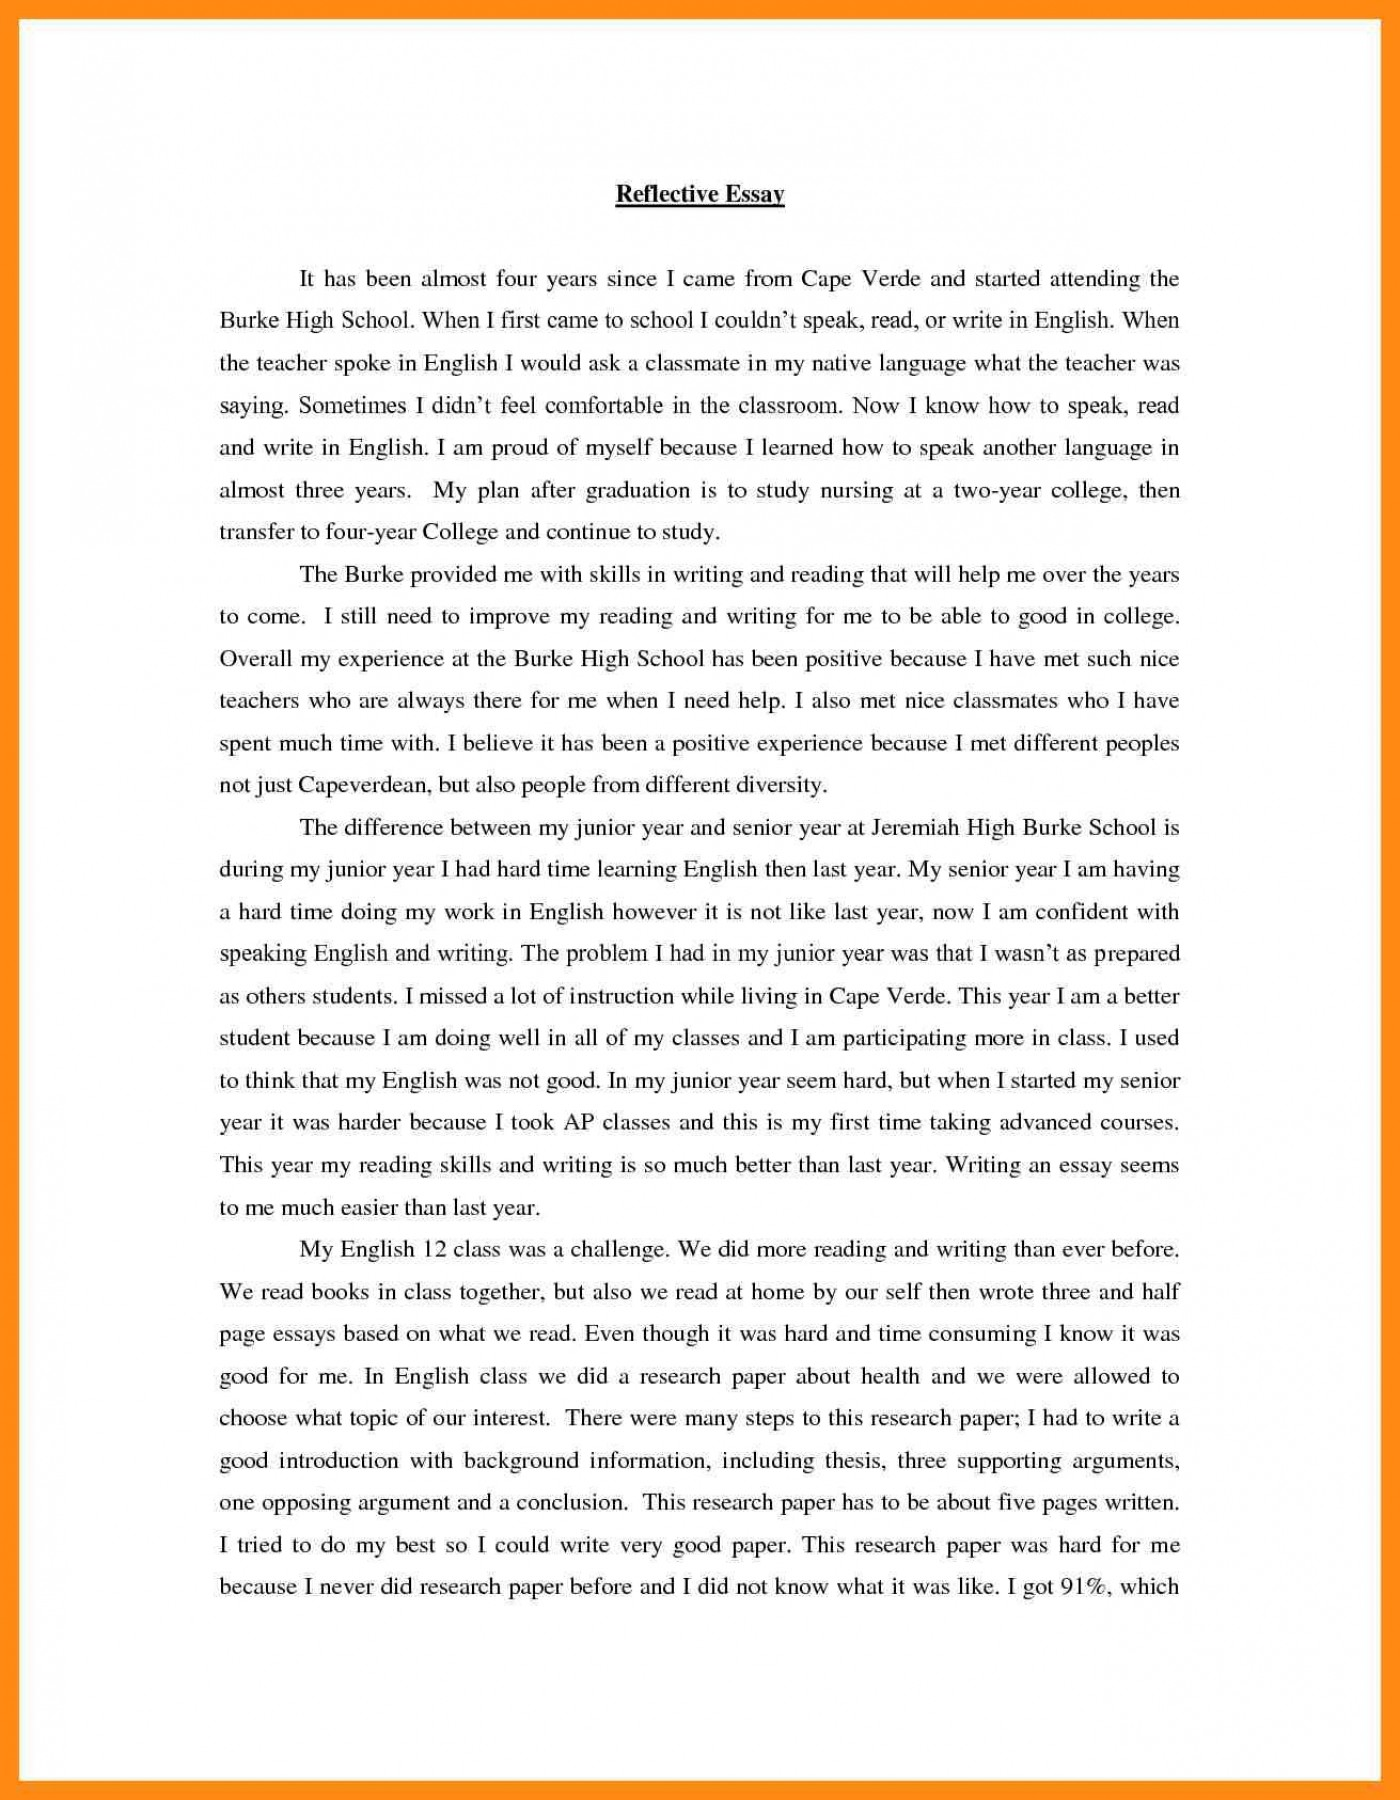 023 Self Reflection Essays Reflective Essay On Personal